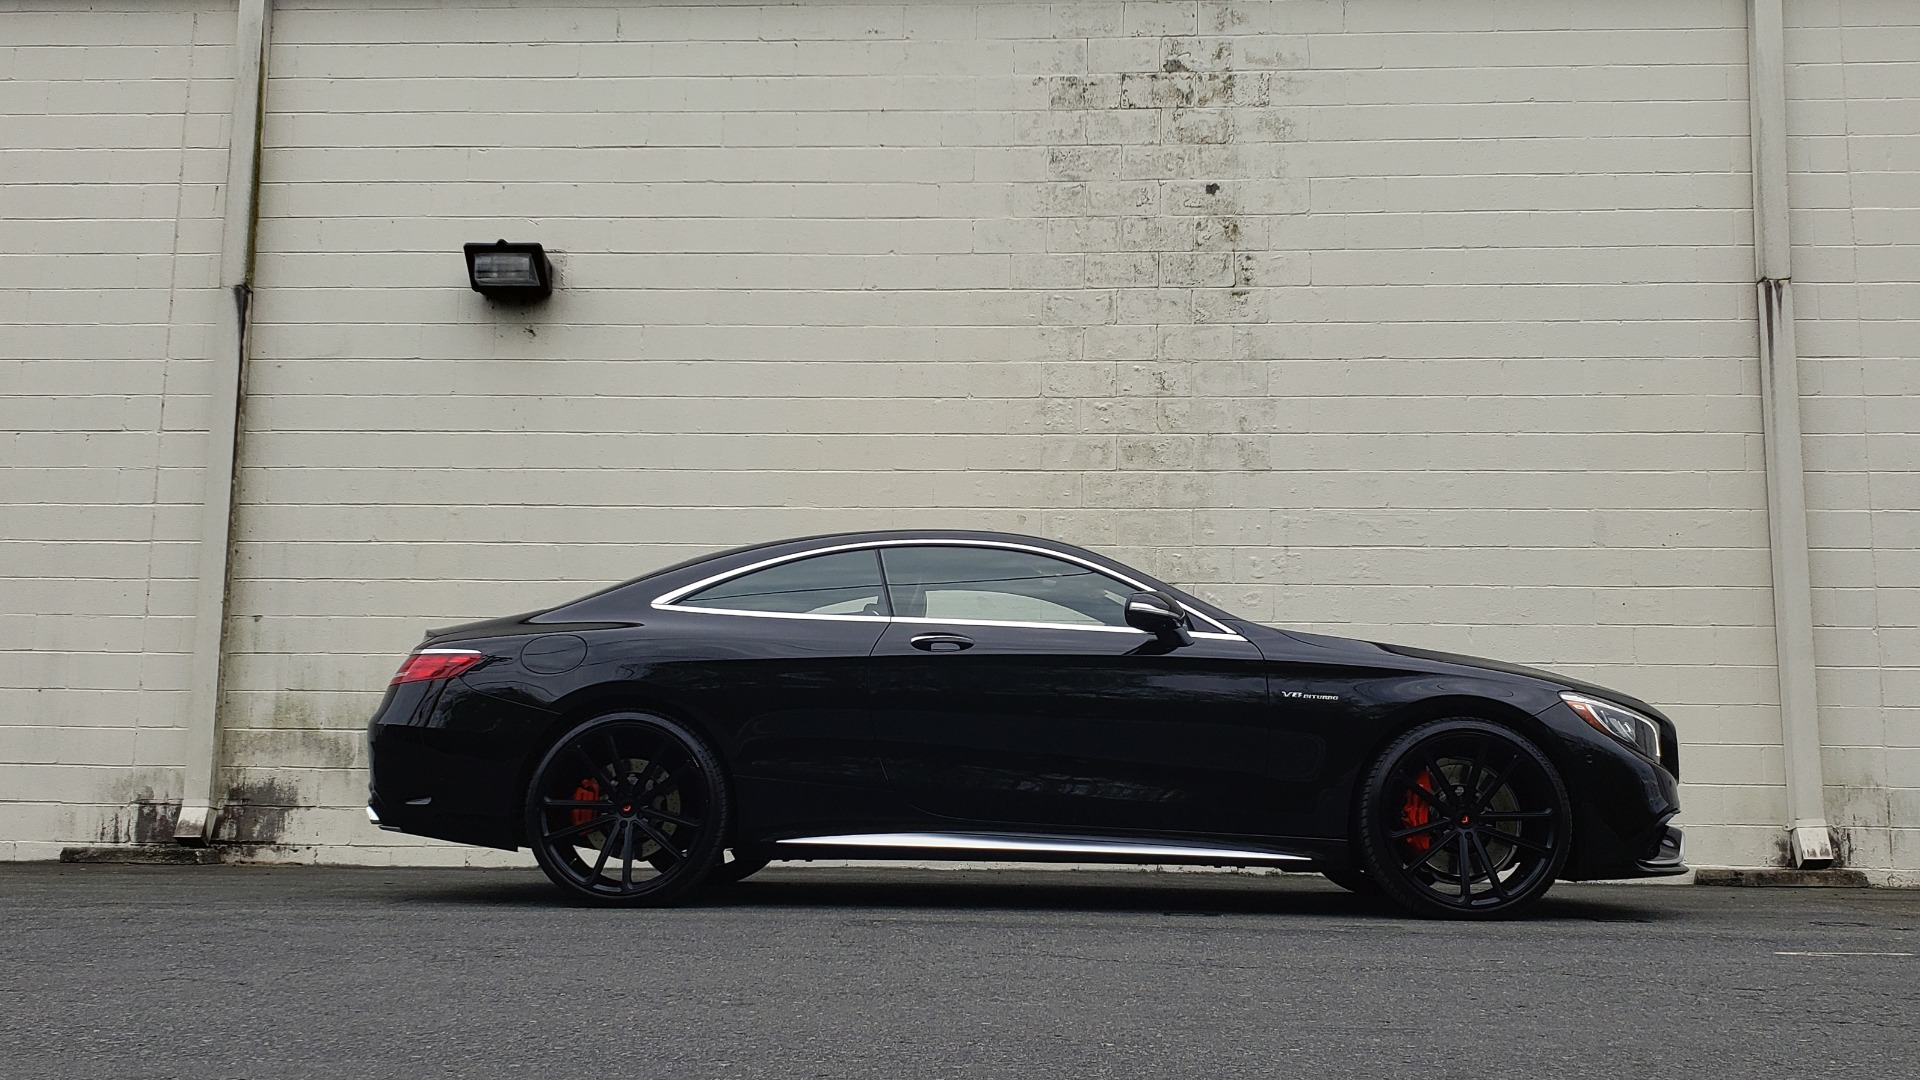 Used 2015 Mercedes-Benz S-CLASS S 63 AMG 4MATIC / DRVR ASST / NIGHT VIEW ASST PLUS / MAGIC SKY for sale Sold at Formula Imports in Charlotte NC 28227 96